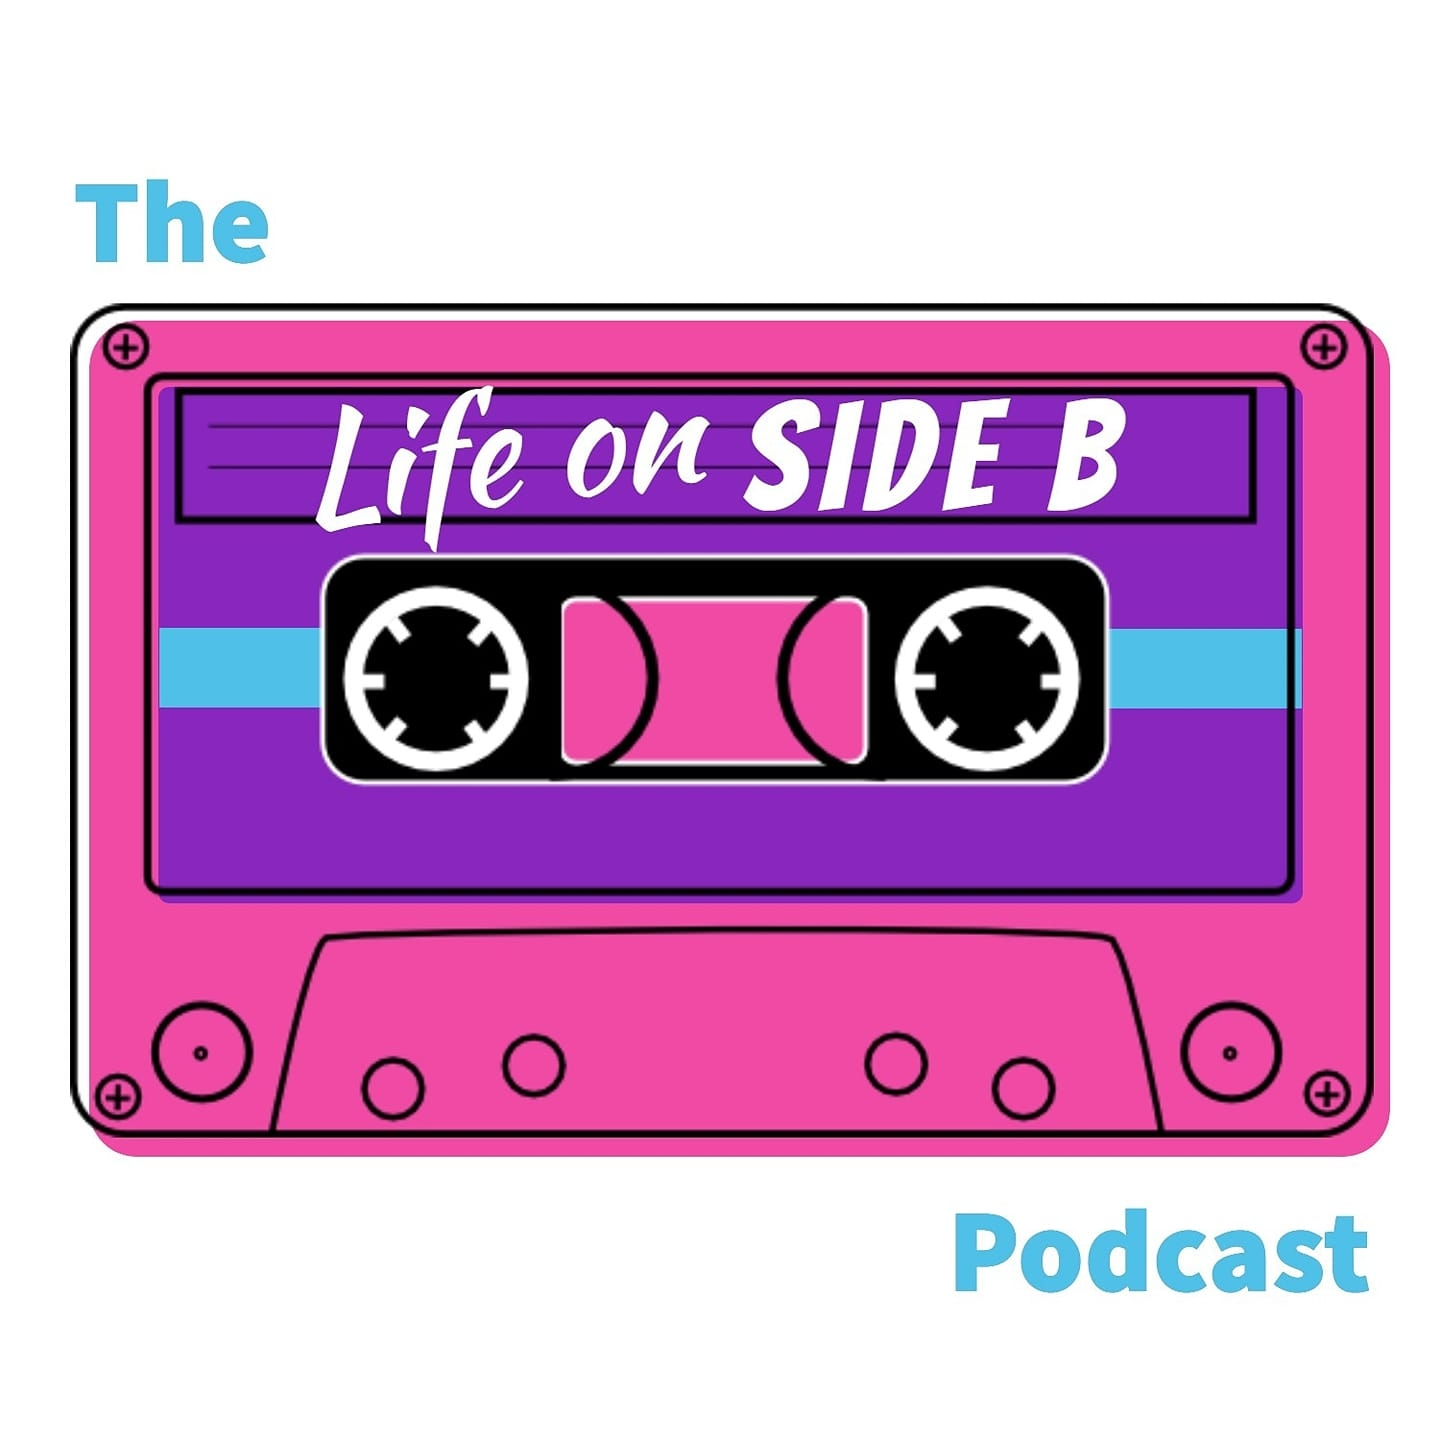 Life on Side B Podcast